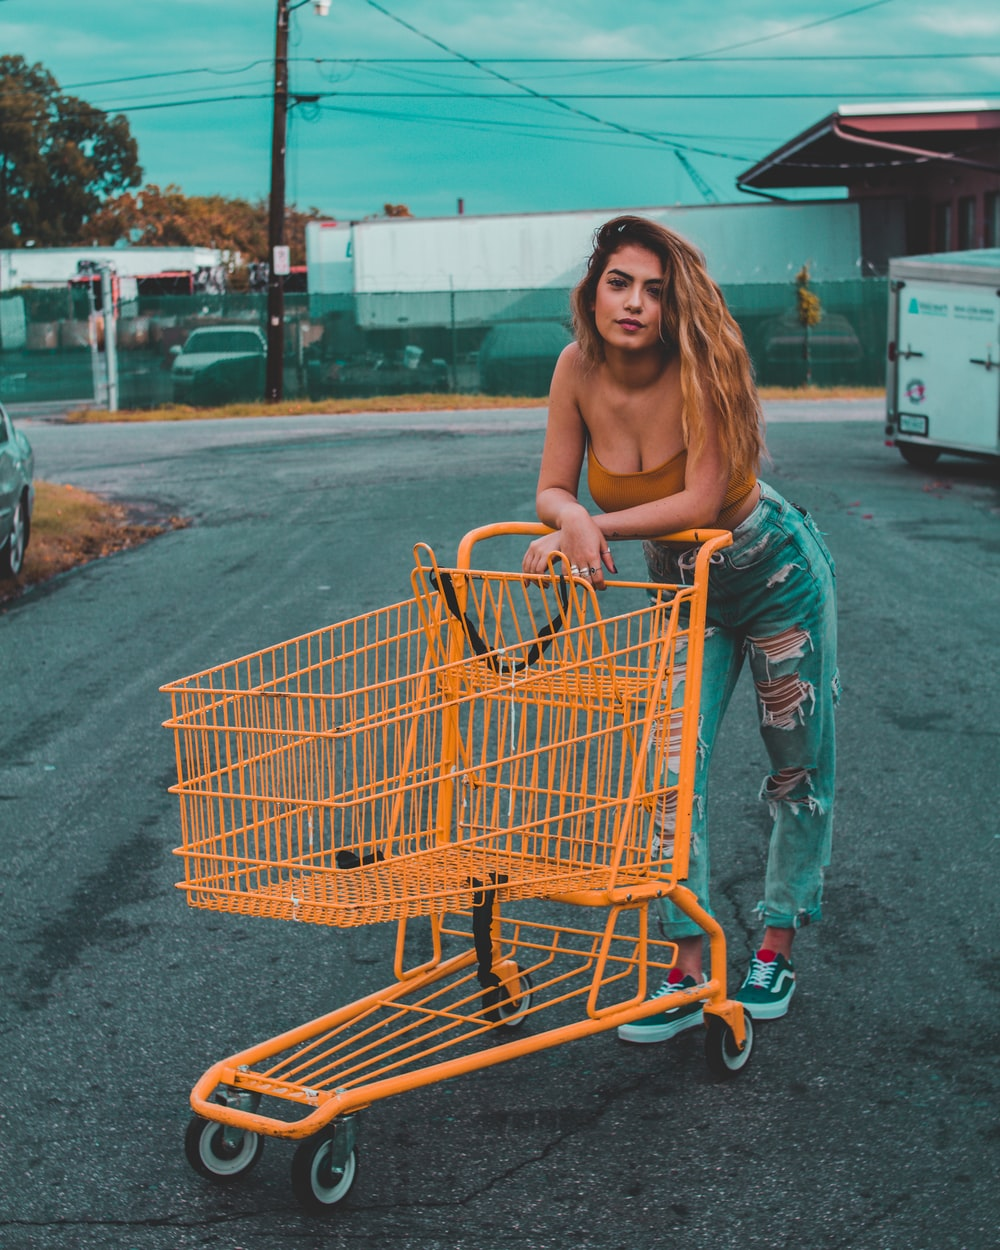 woman leaning on yellow shopping cart standing on concrete pavement during day